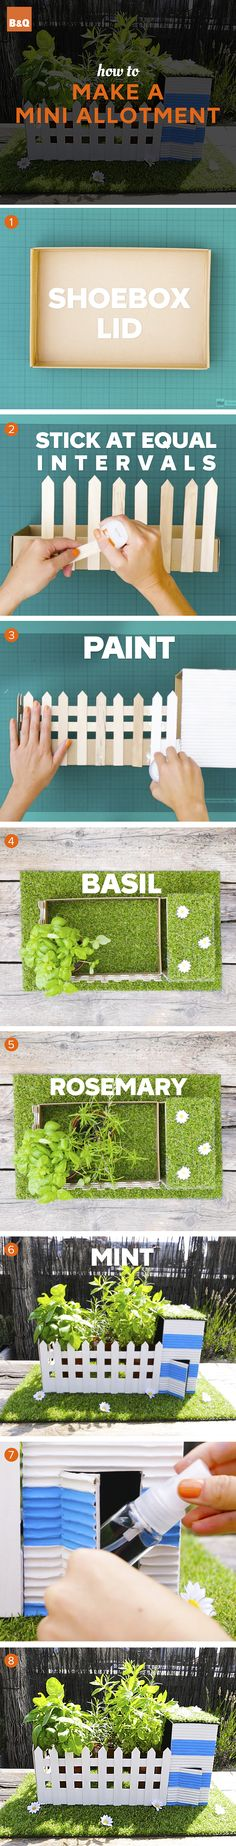 Spark the kids' interest in gardening with this mini allotment project. Garden Projects, Craft Projects, Projects To Try, Hobbies And Crafts, Arts And Crafts, Diy Crafts, Art For Kids, Crafts For Kids, Outdoor Learning